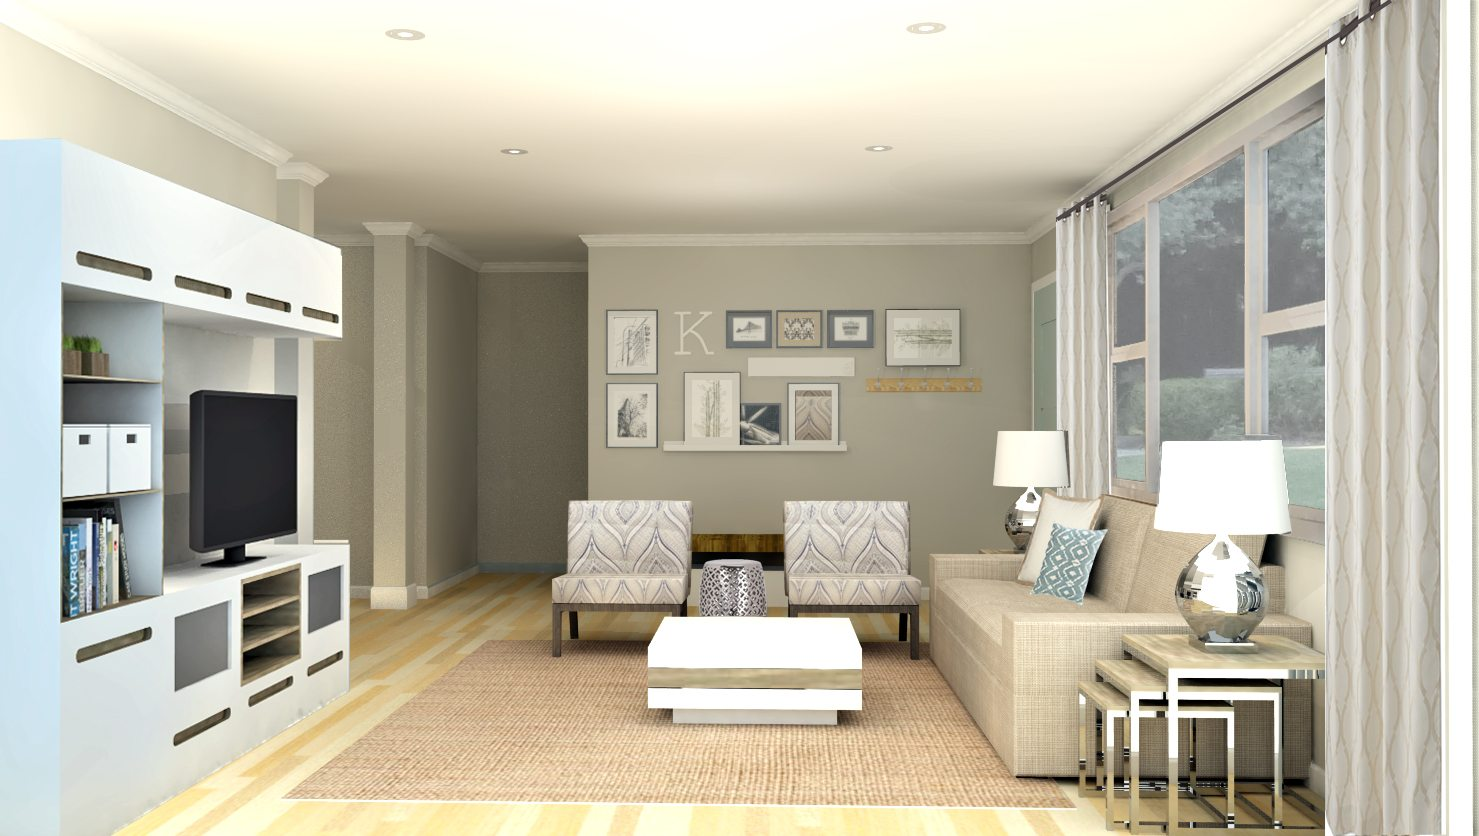 Interior home design services from a space to call home - Learn interior design at home virtually ...